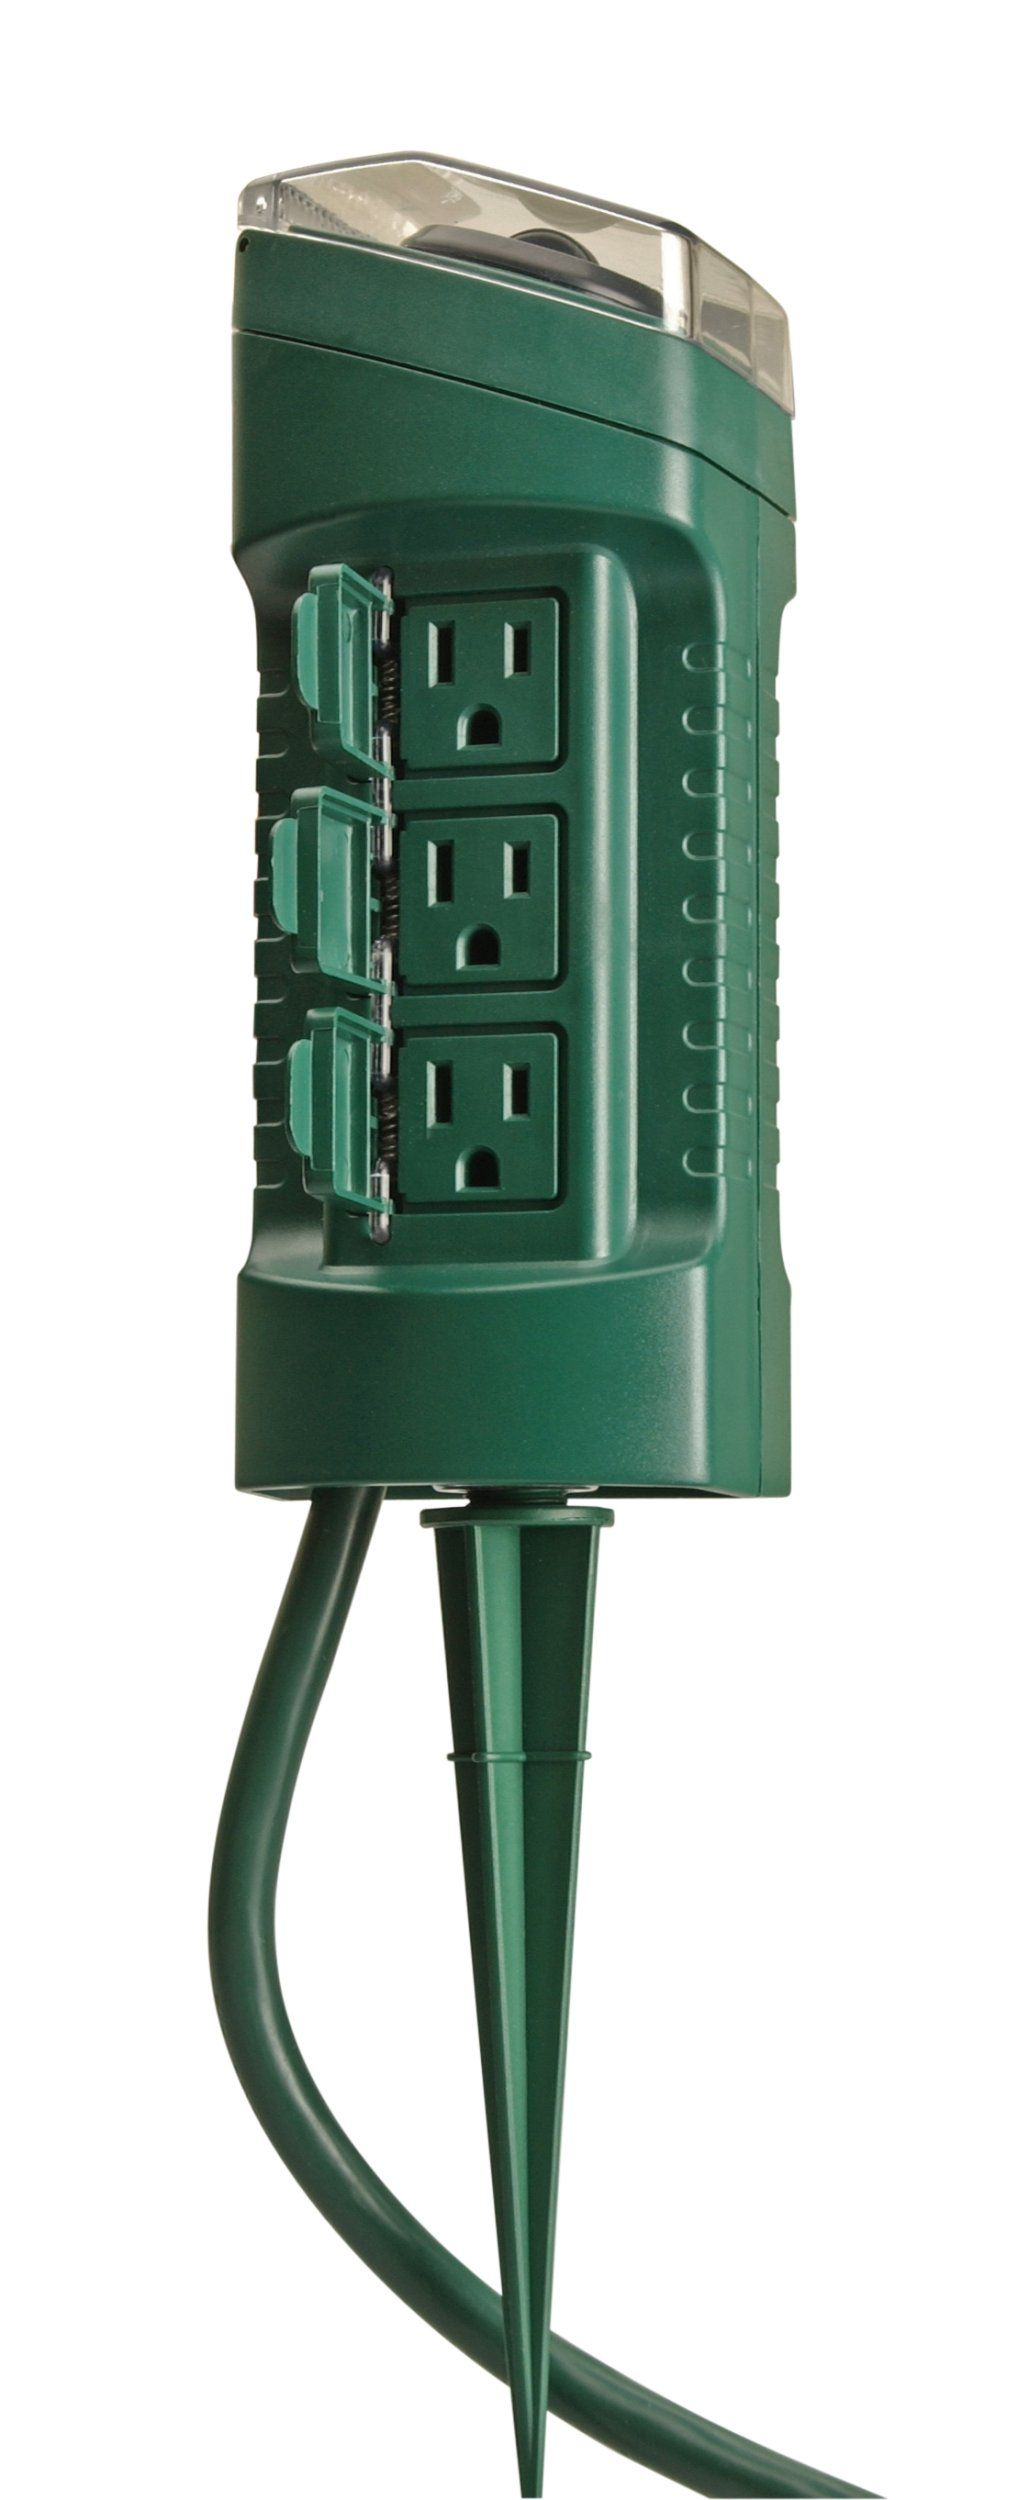 Yard Master 13547 6 Outlet Power Stake With Light Sensor And 6 Foot Cord Outdo Christmas Light Installation Outdoor Christmas Lights Christmas Lights Outside